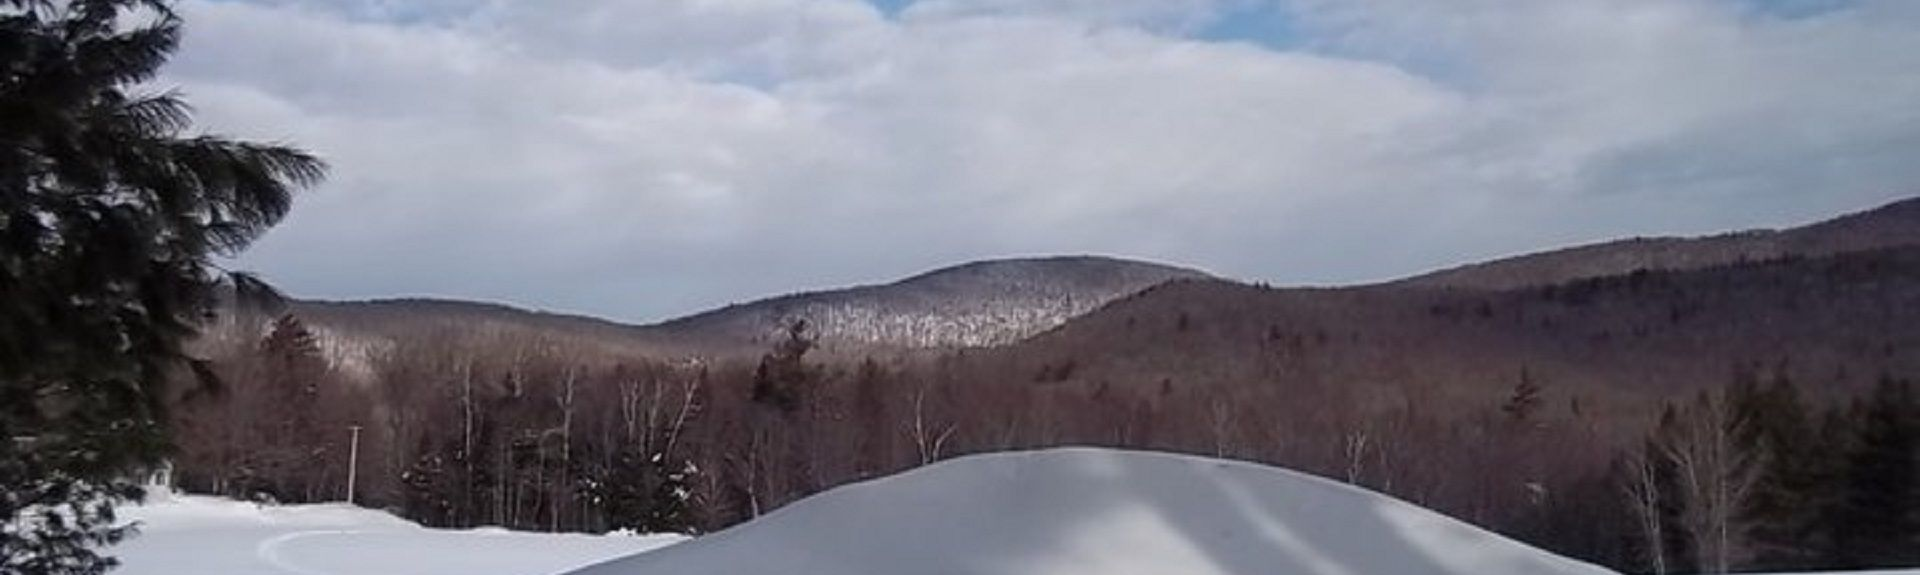 Mount Snow Valley, Vermont, Verenigde Staten